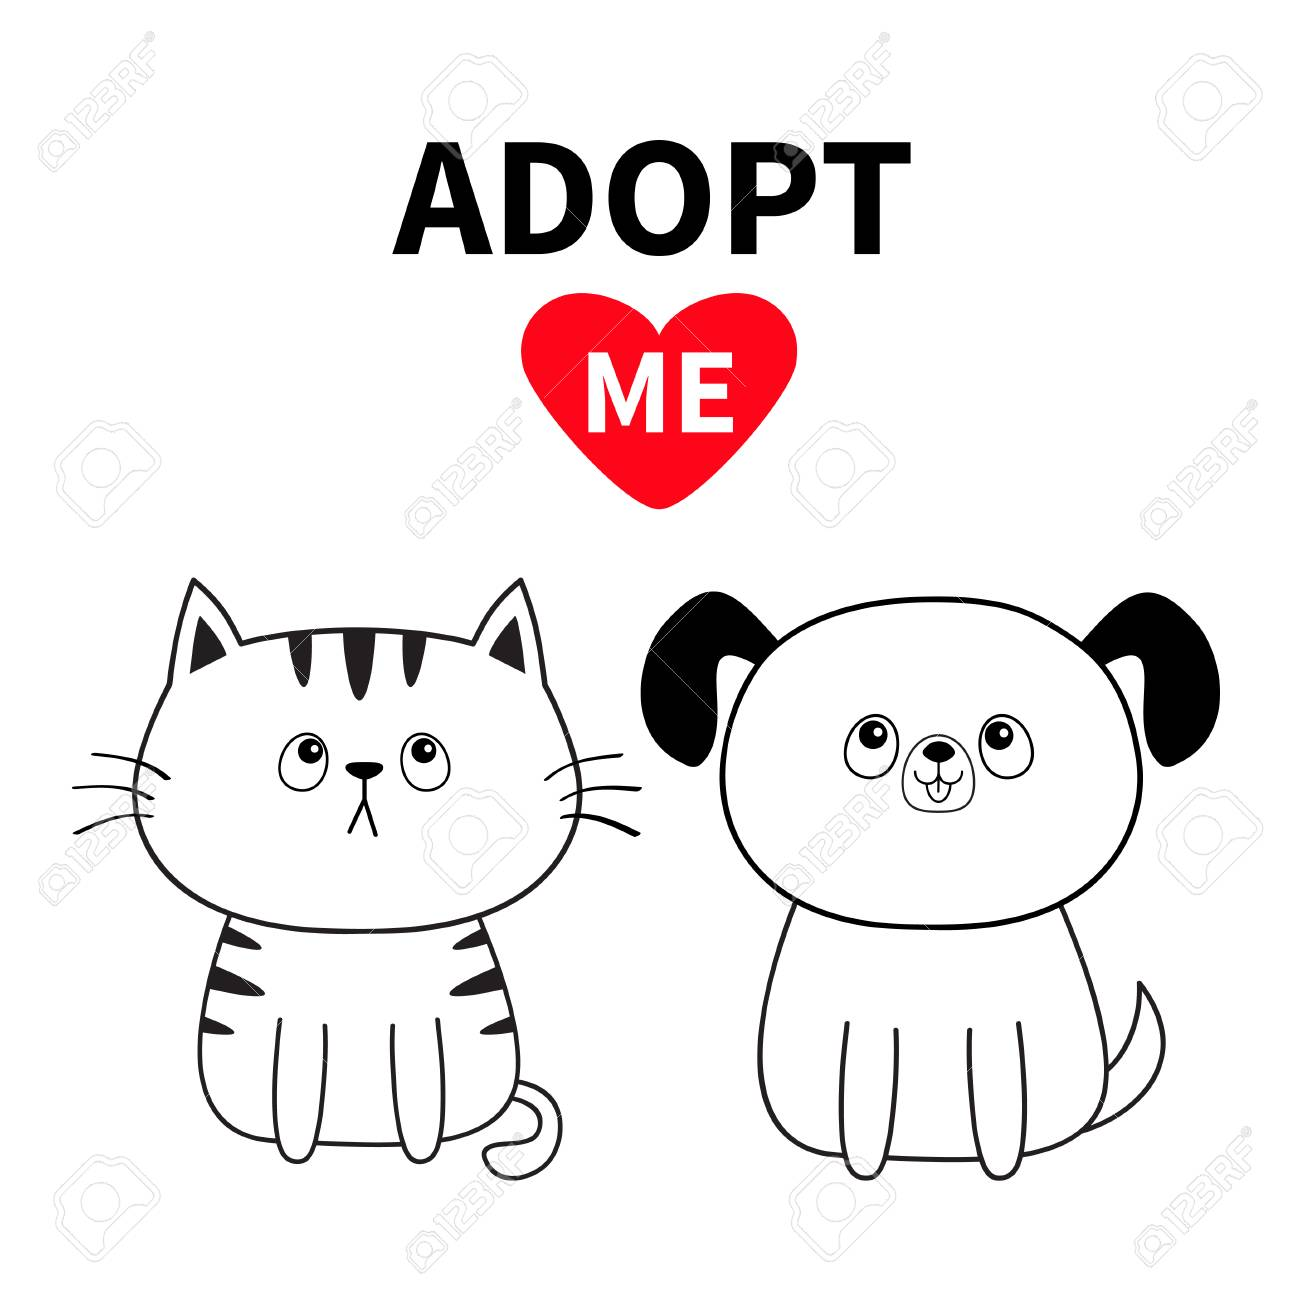 Adopt Me Contour Sitting Dog Cat Silhouette Set Red Heart Royalty Free Cliparts Vectors And Stock Illustration Image 111614299